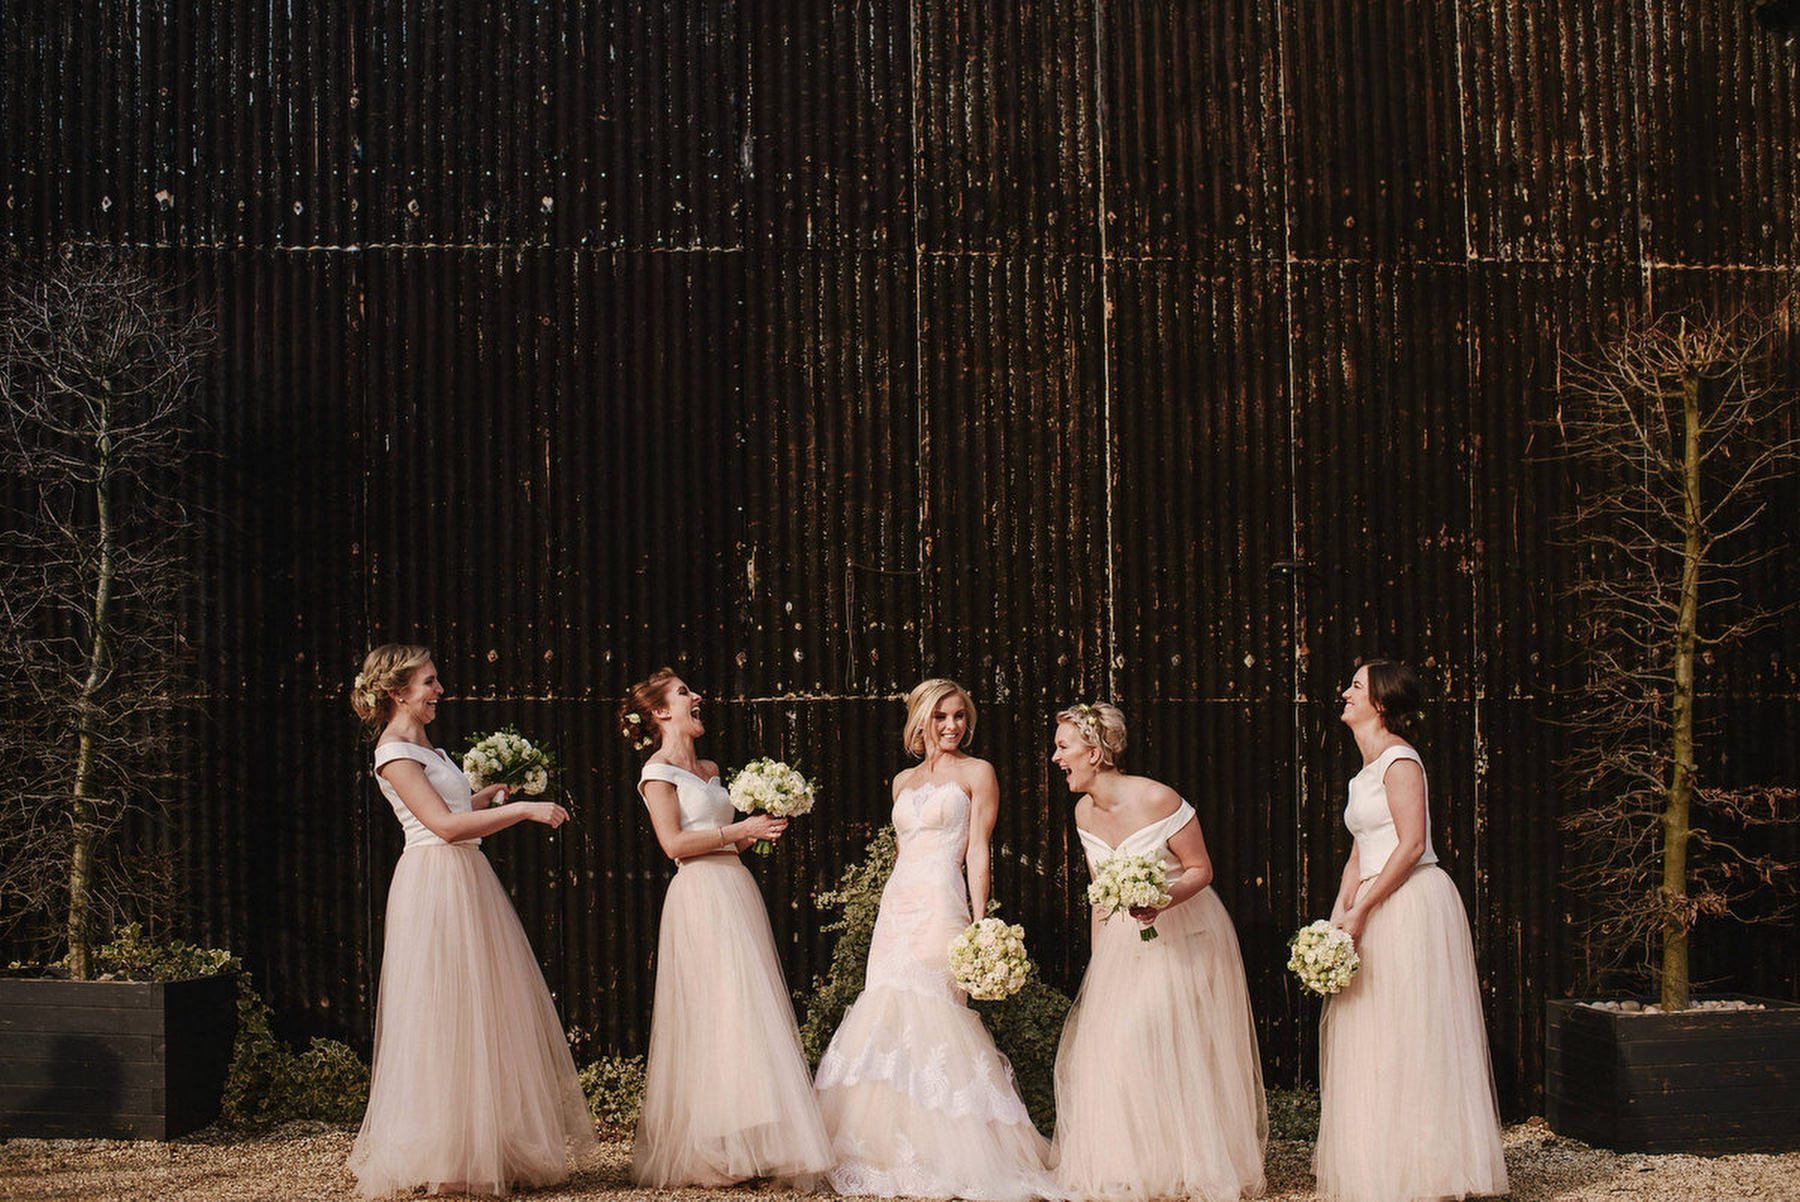 Cripps barn Wedding Venues